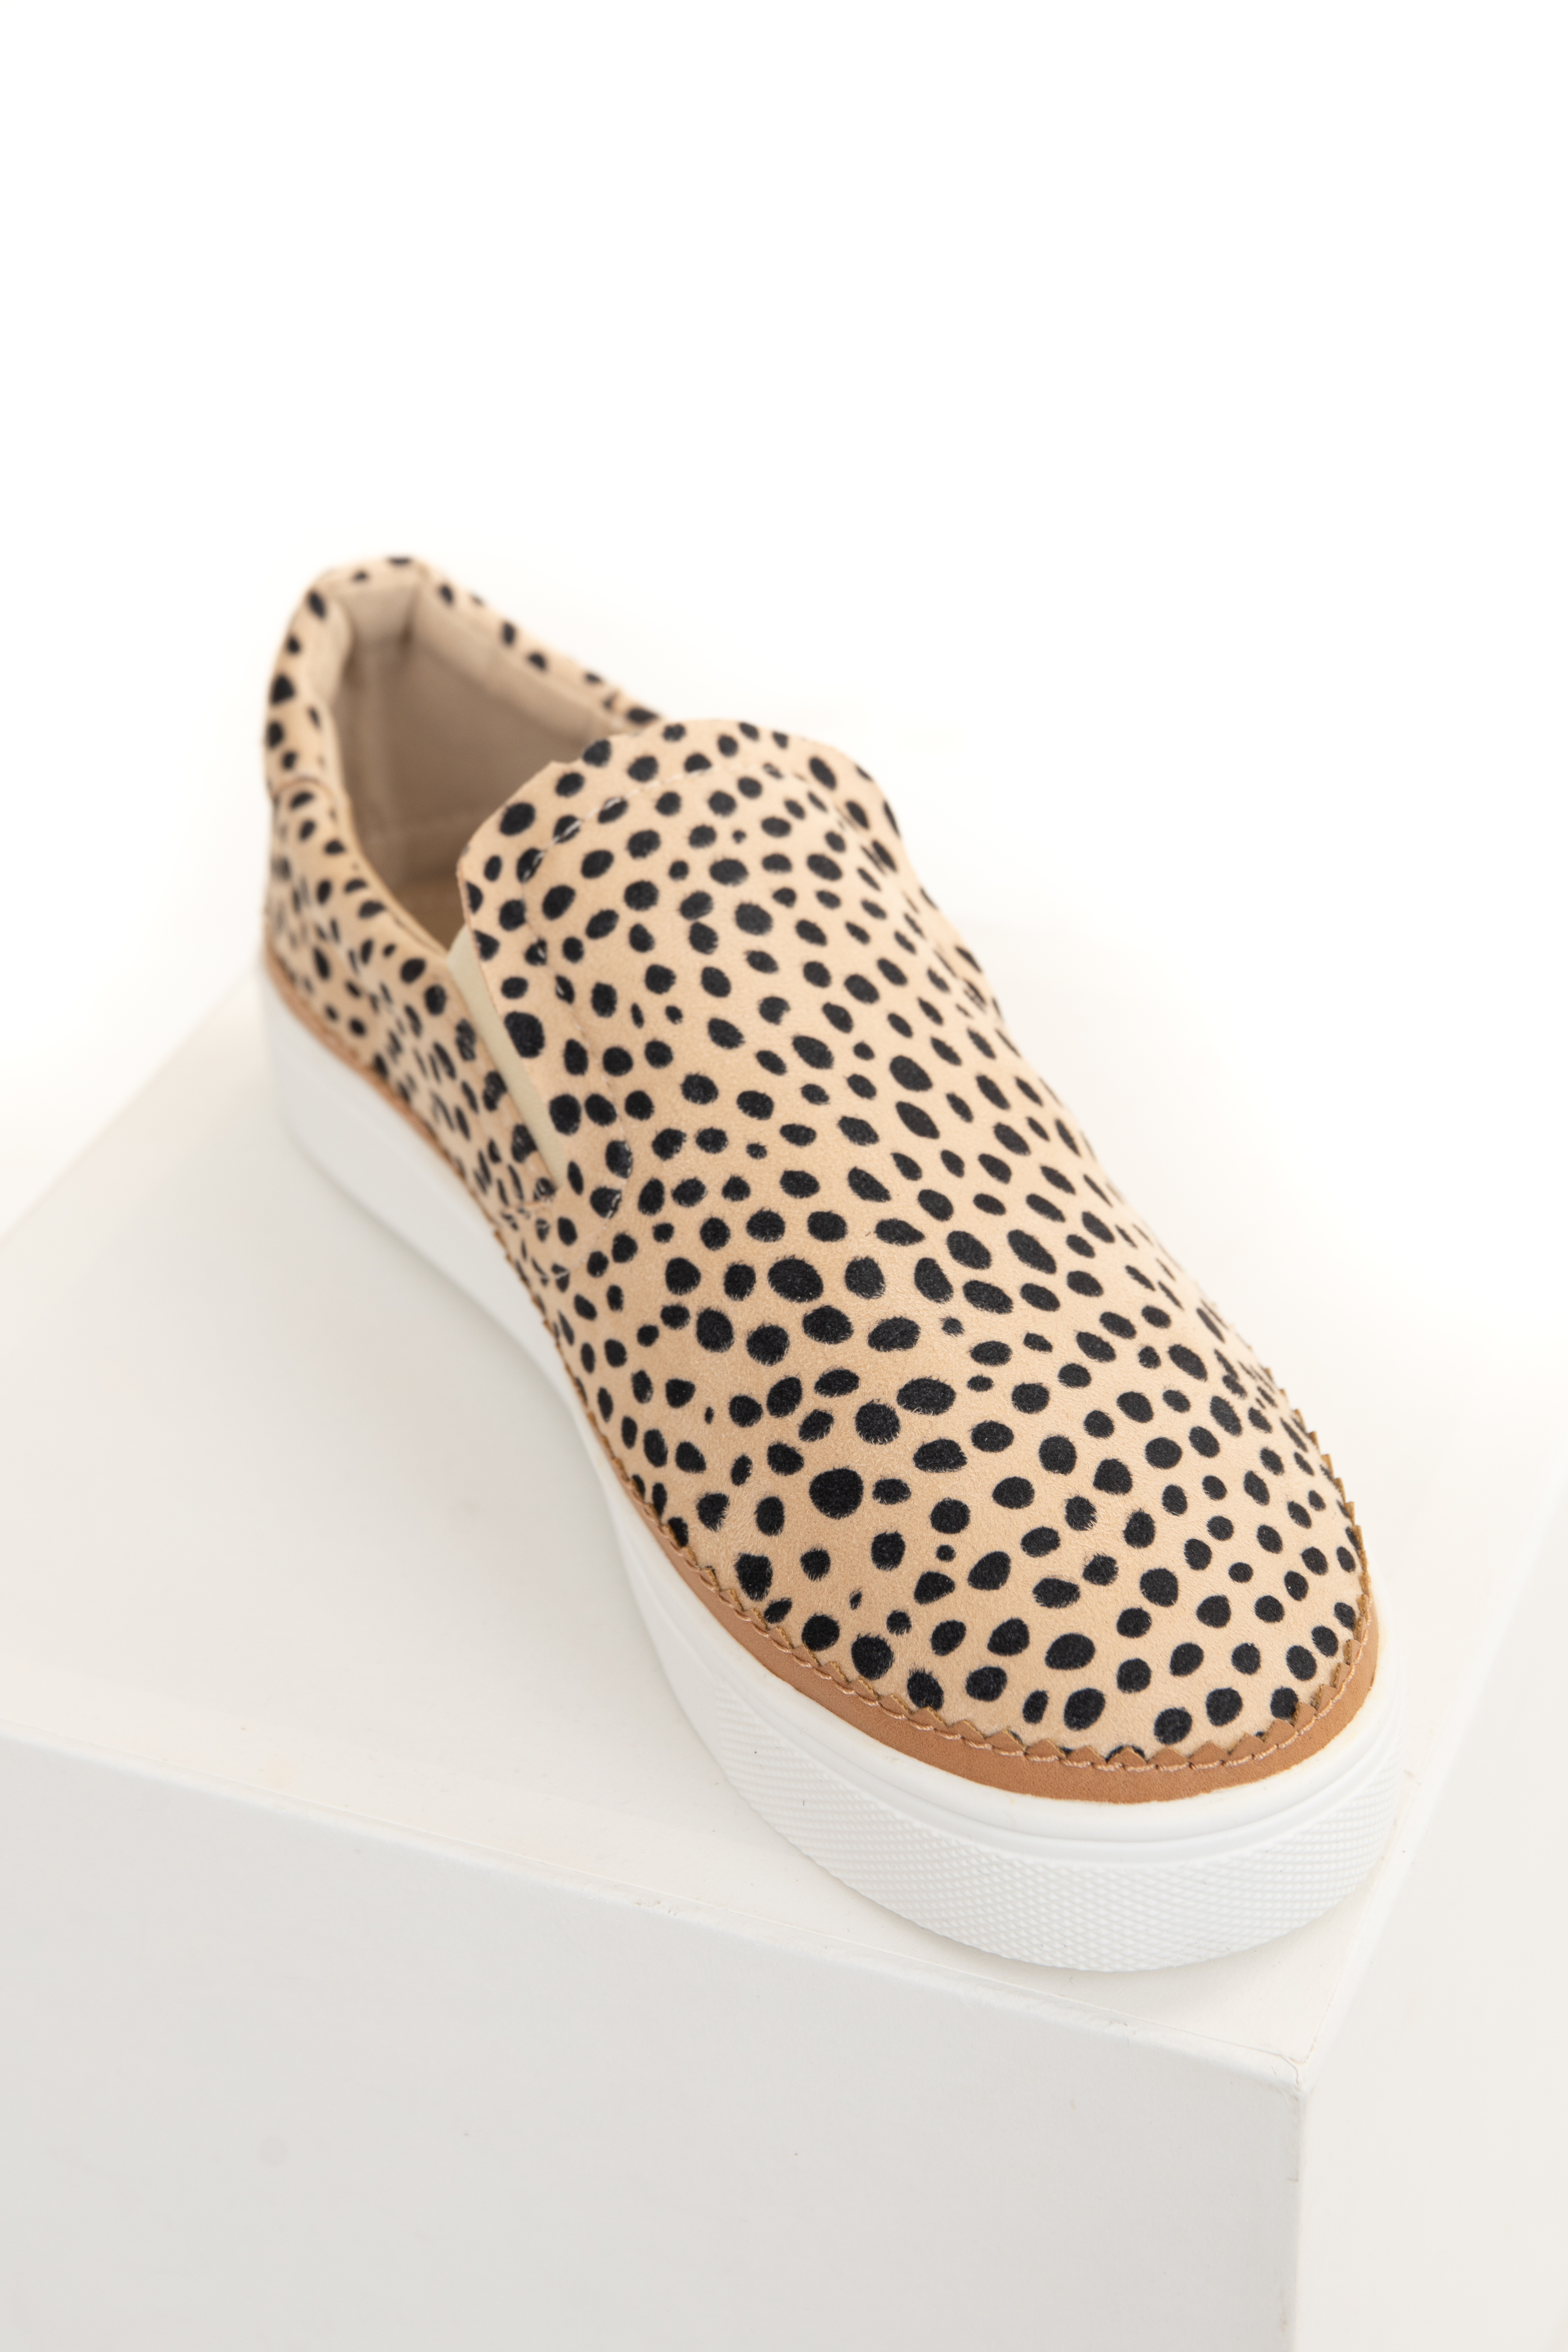 Beige Cheetah Print Textured Slip On Sneakers